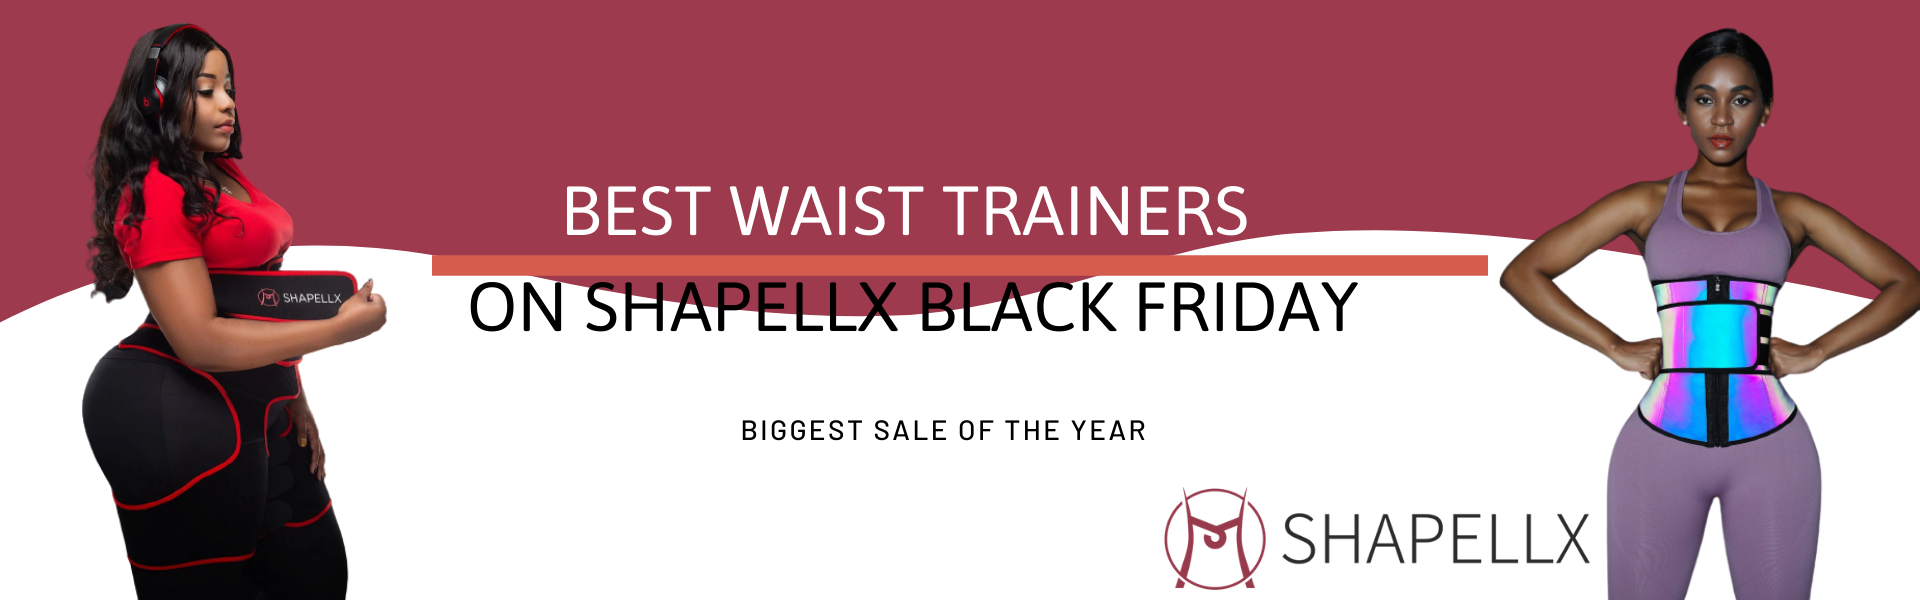 Best Waist Trainers on Black Friday Sales - The Biggest Sale On Shapellx